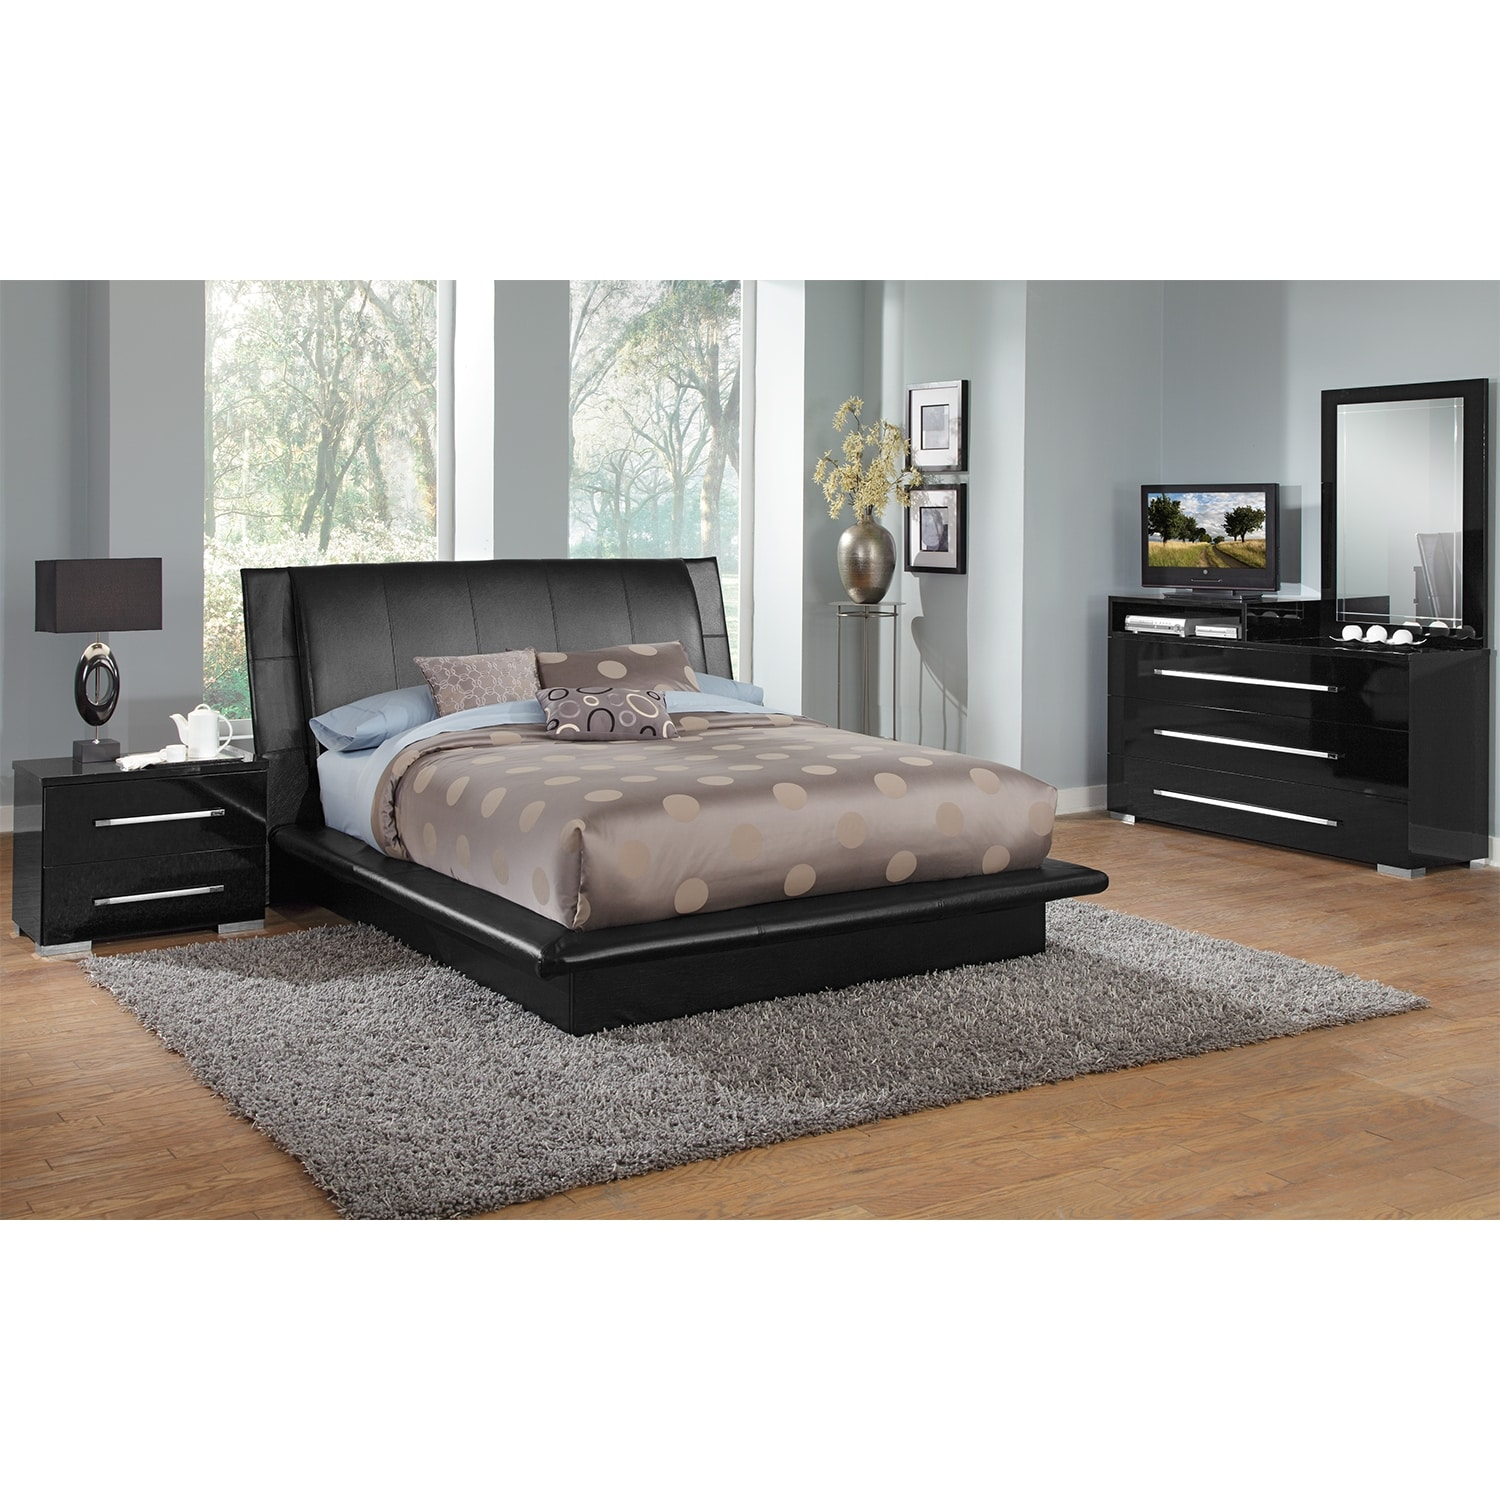 Bedroom Furniture - Dimora 6-Piece Queen Upholstered Bedroom Set with Media Dresser - Black